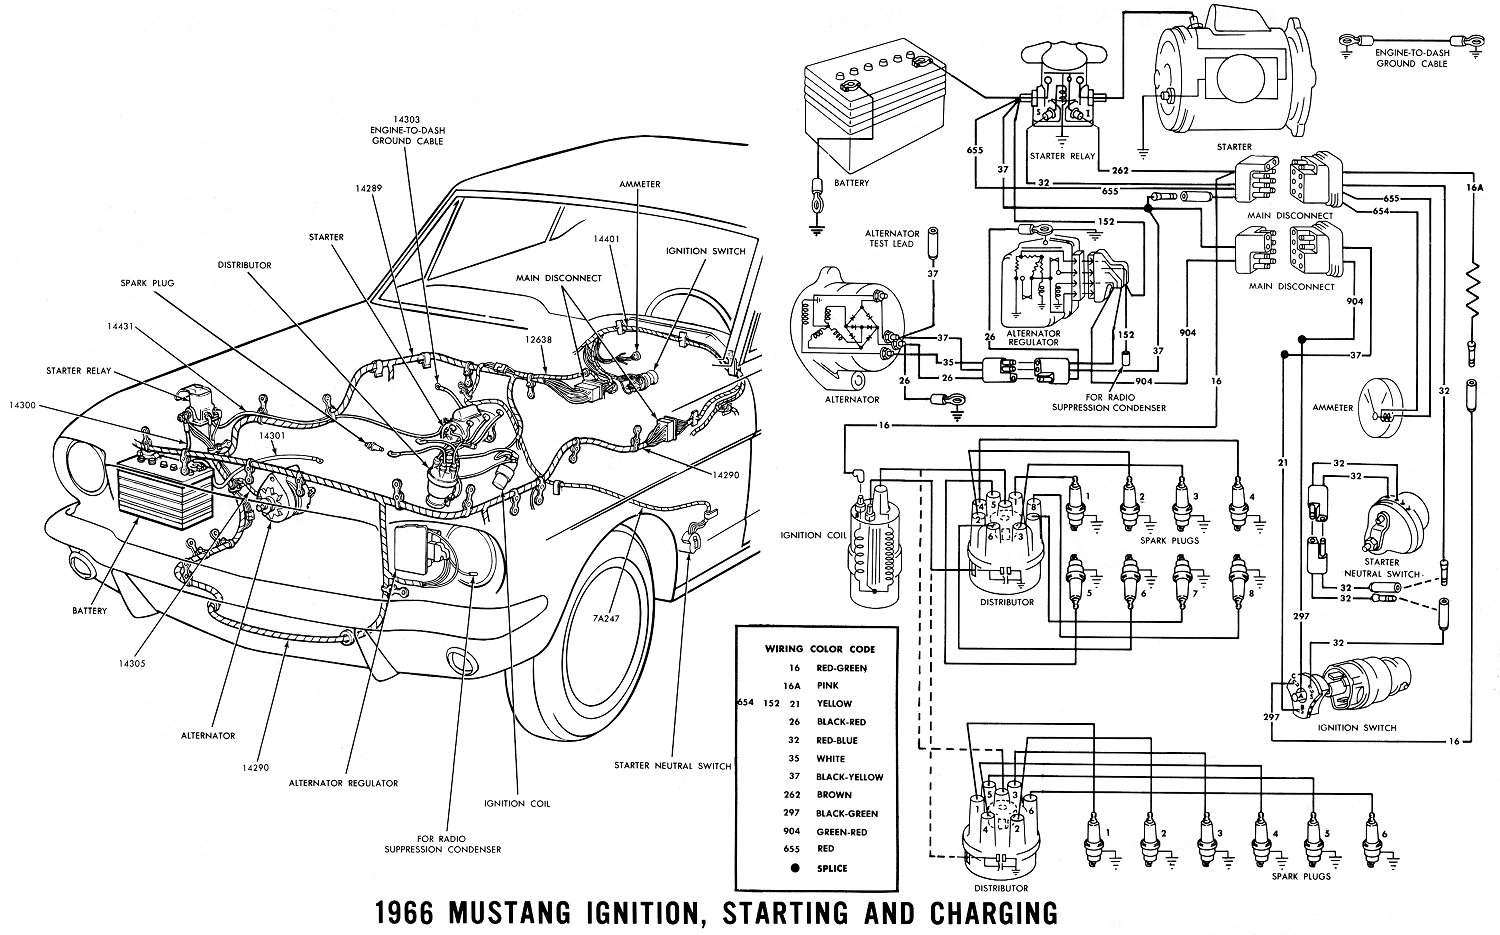 66ignit 1966 mustang wiring diagrams average joe restoration Ford E 350 Wiring Diagrams at gsmx.co